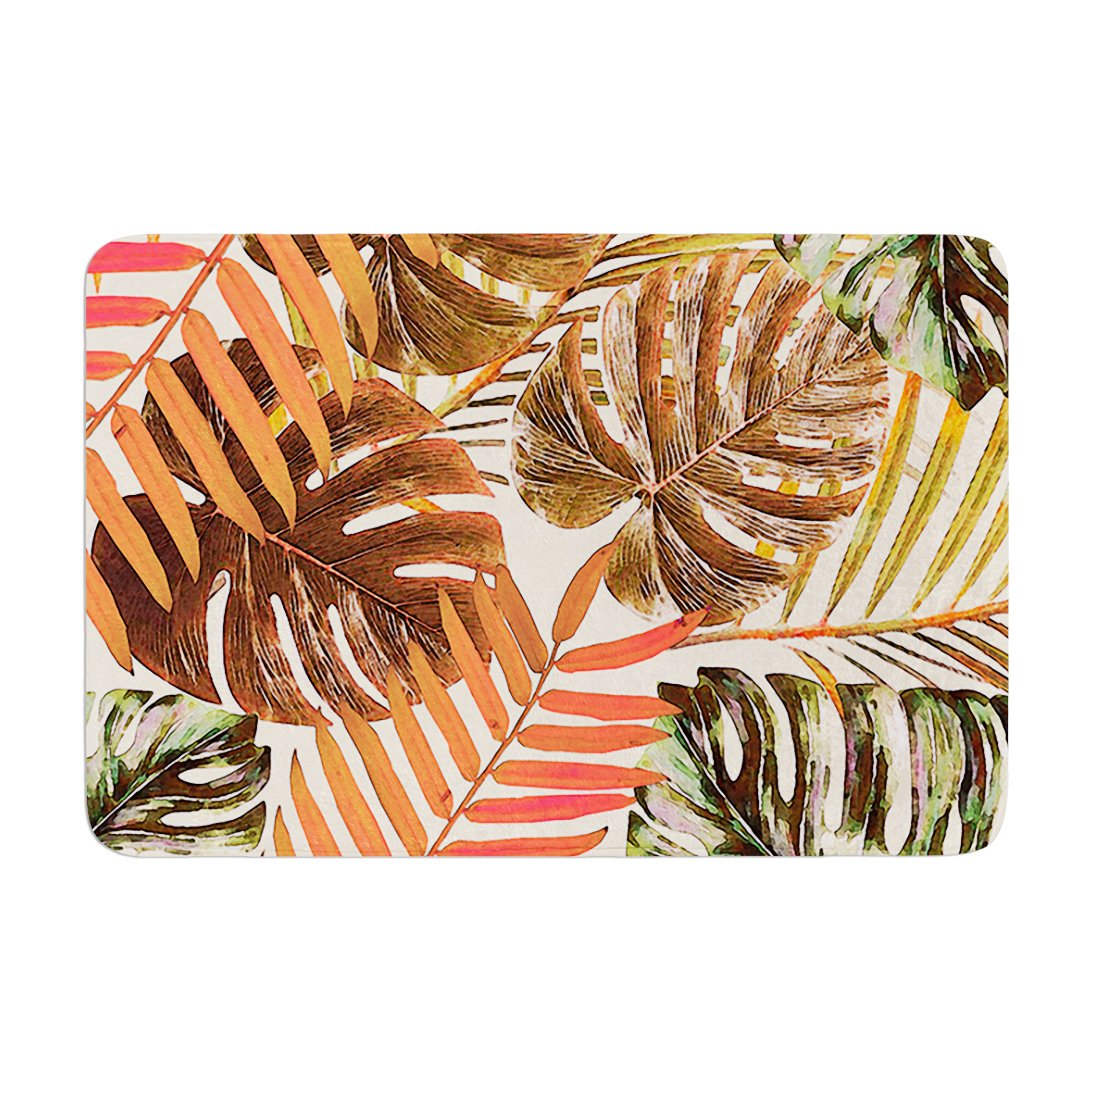 Kess InHouse Alison Coxon Jungle Rust Orange Brown Memory Foam Bath Mat, 24 by 36'